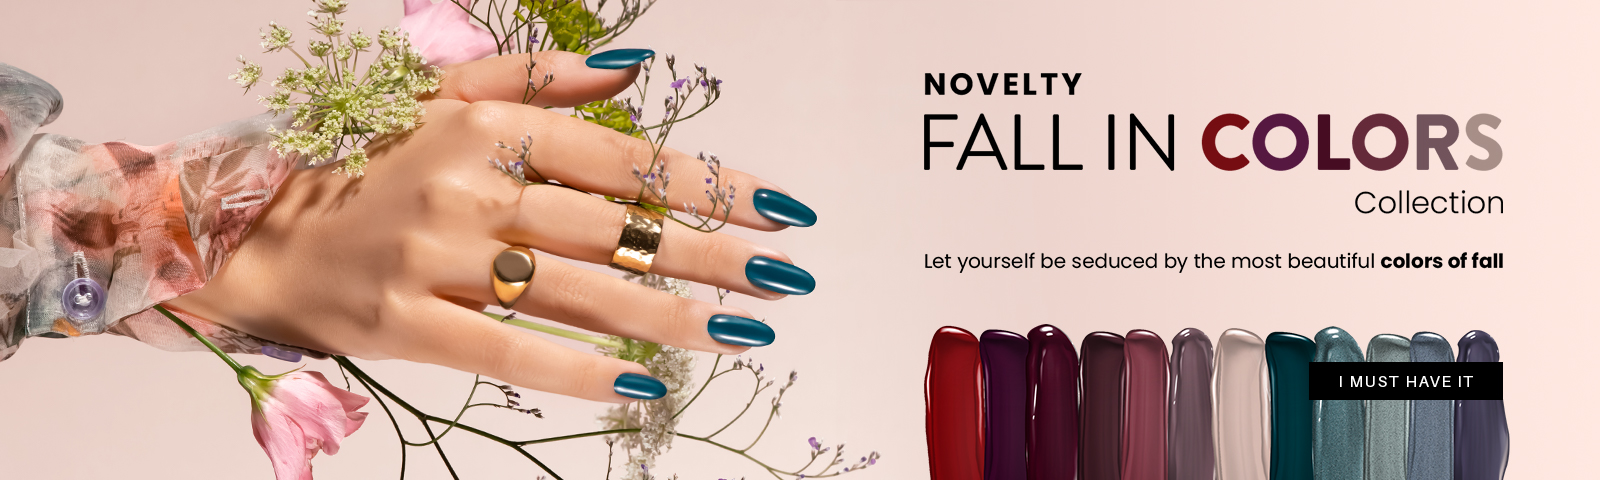 Fall in colors NEW AUTUMN COLLECTIONDISCOVER HER INCREDIBLE SHADES  CHECK IT OUT!